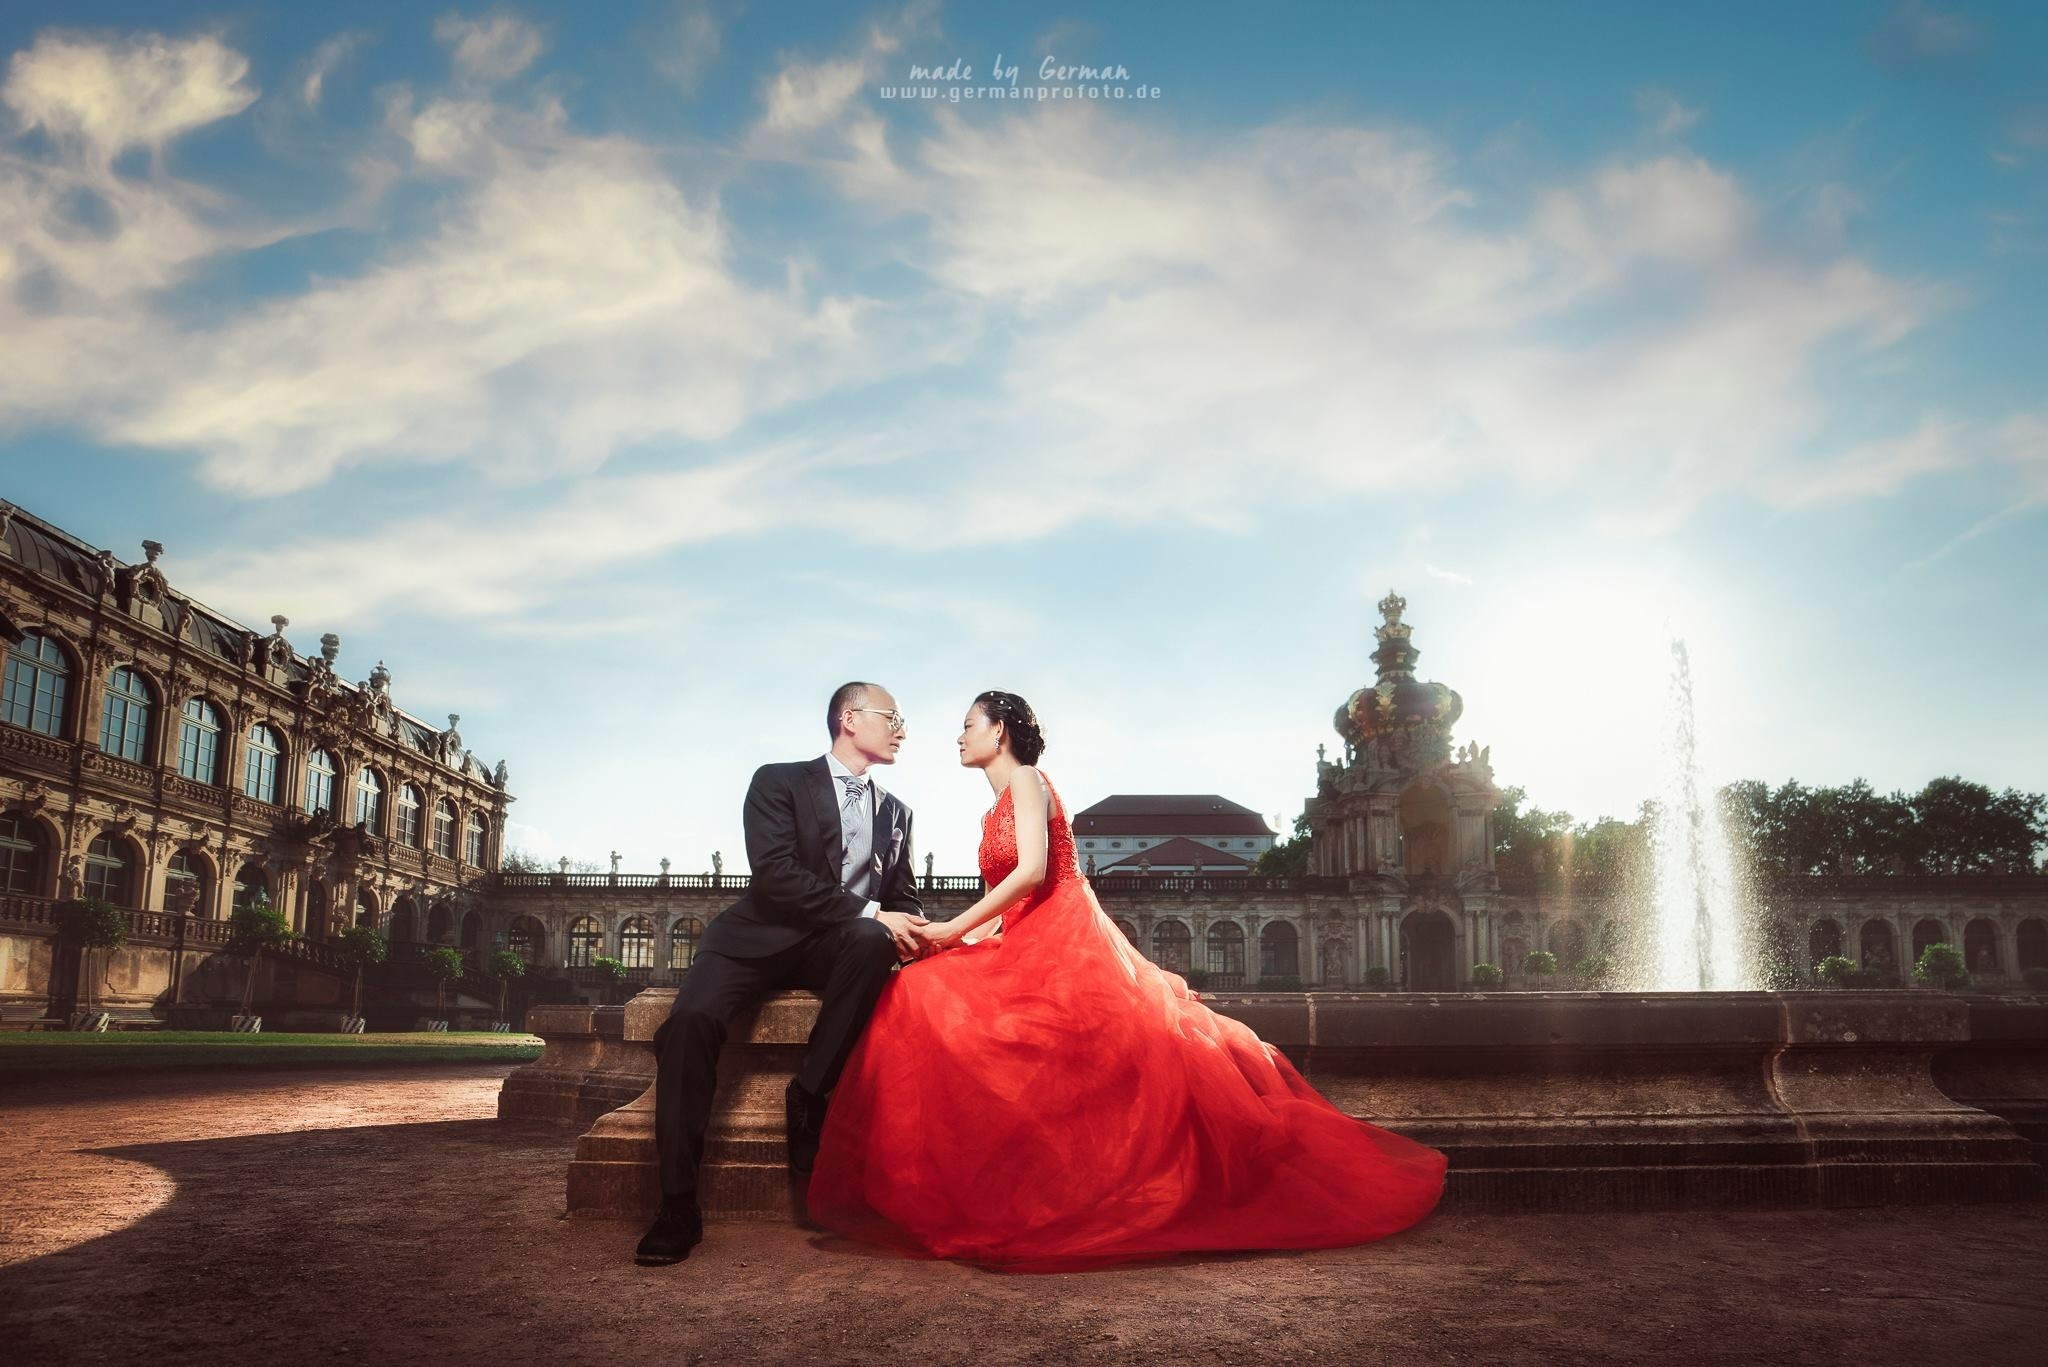 Zheyao & Jieqing - Wedding by German Levitsky